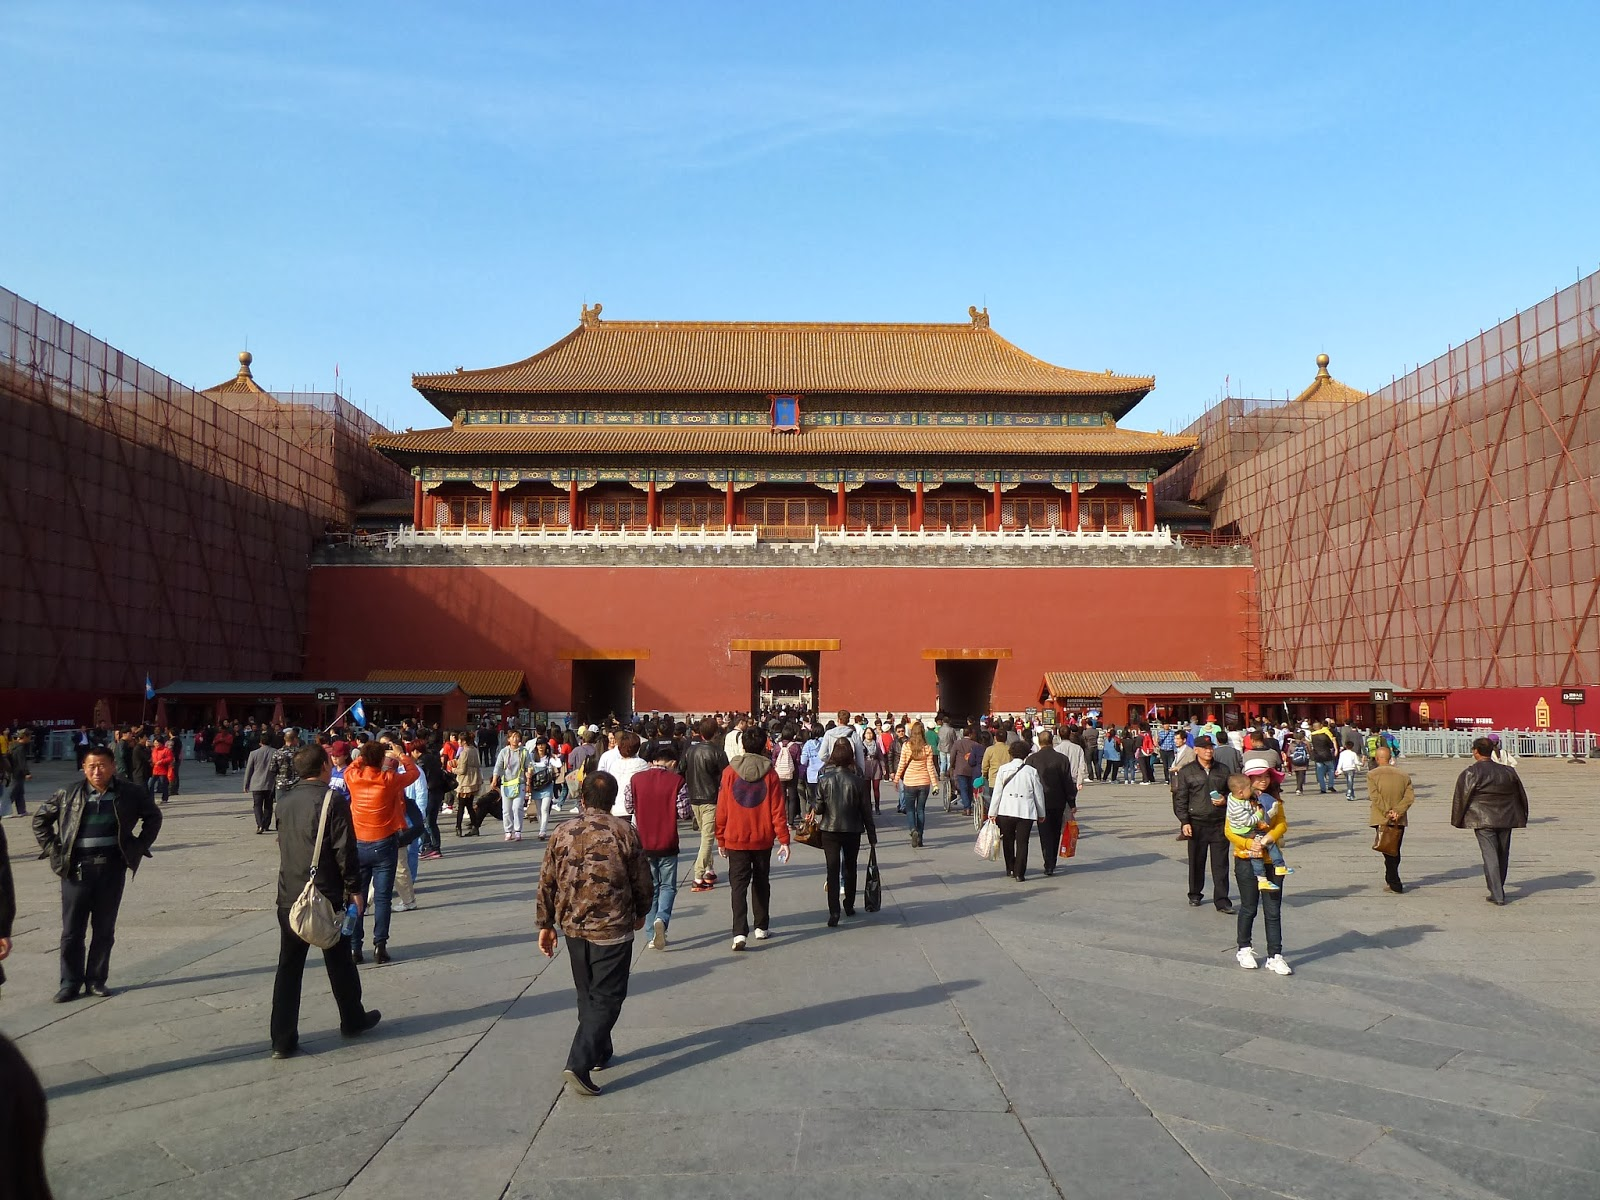 Tiananmen Square and Forbidden City in Beijing